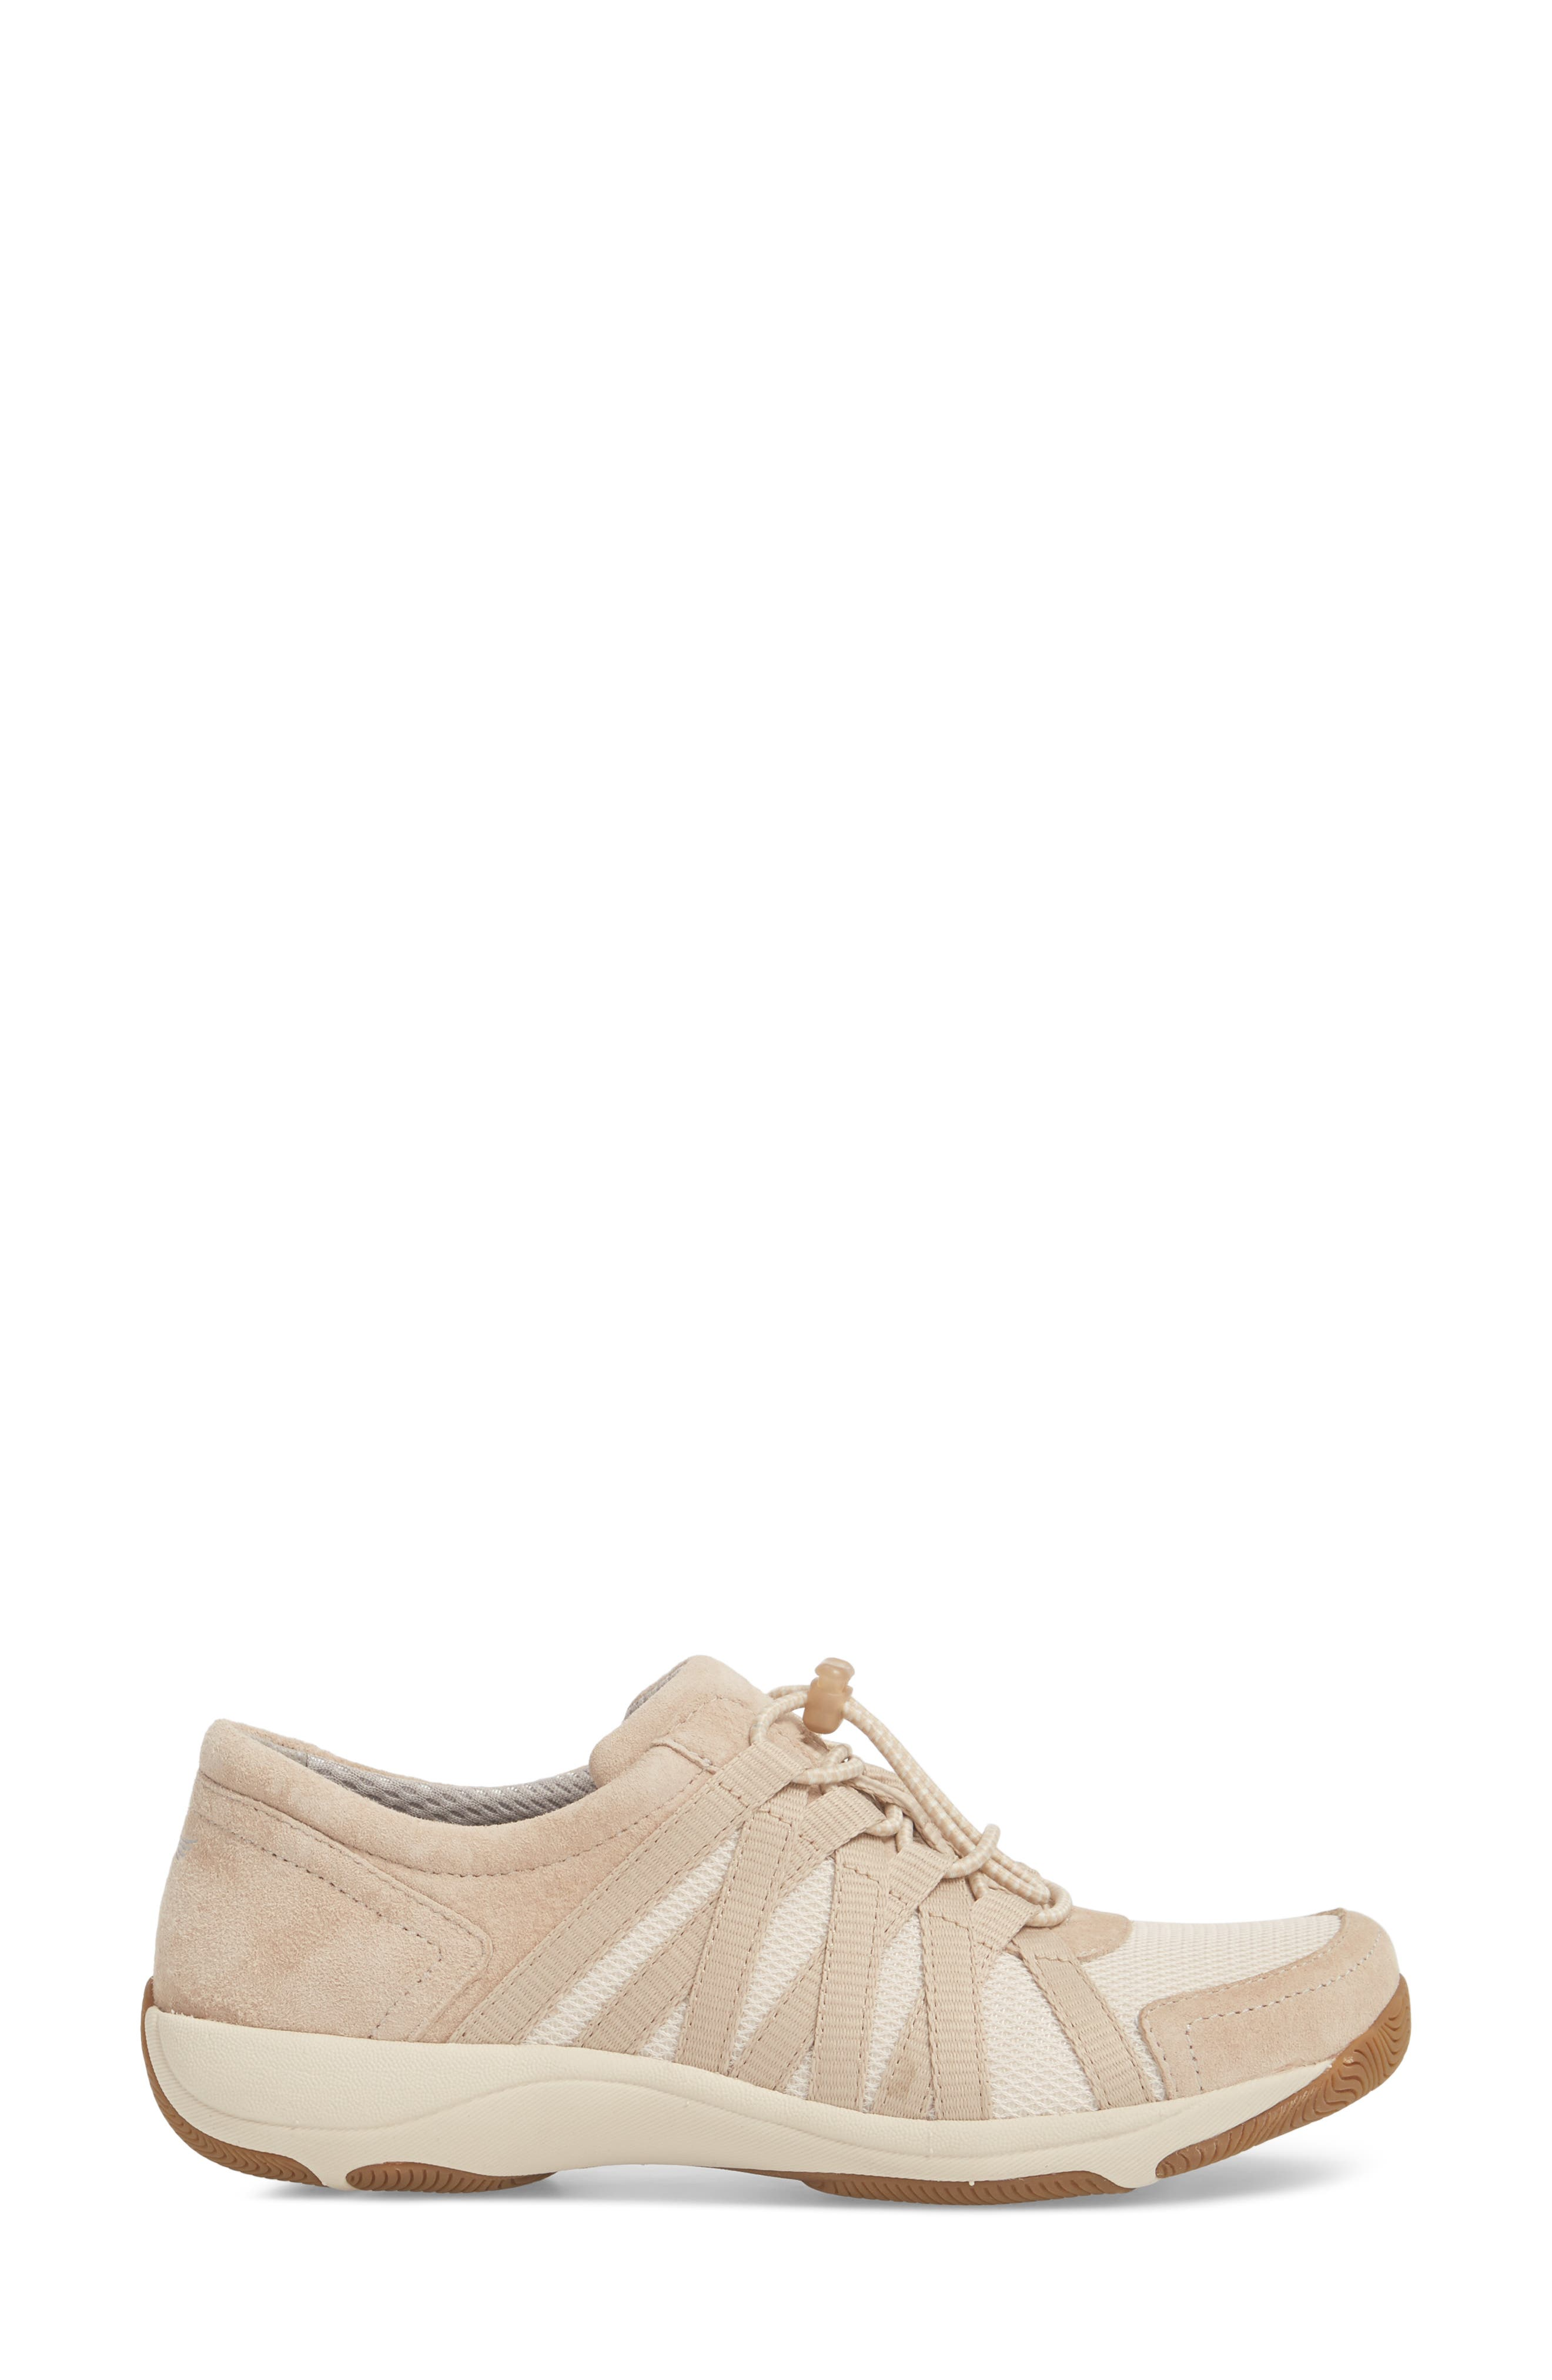 Halifax Collection Honor Sneaker,                             Alternate thumbnail 19, color,